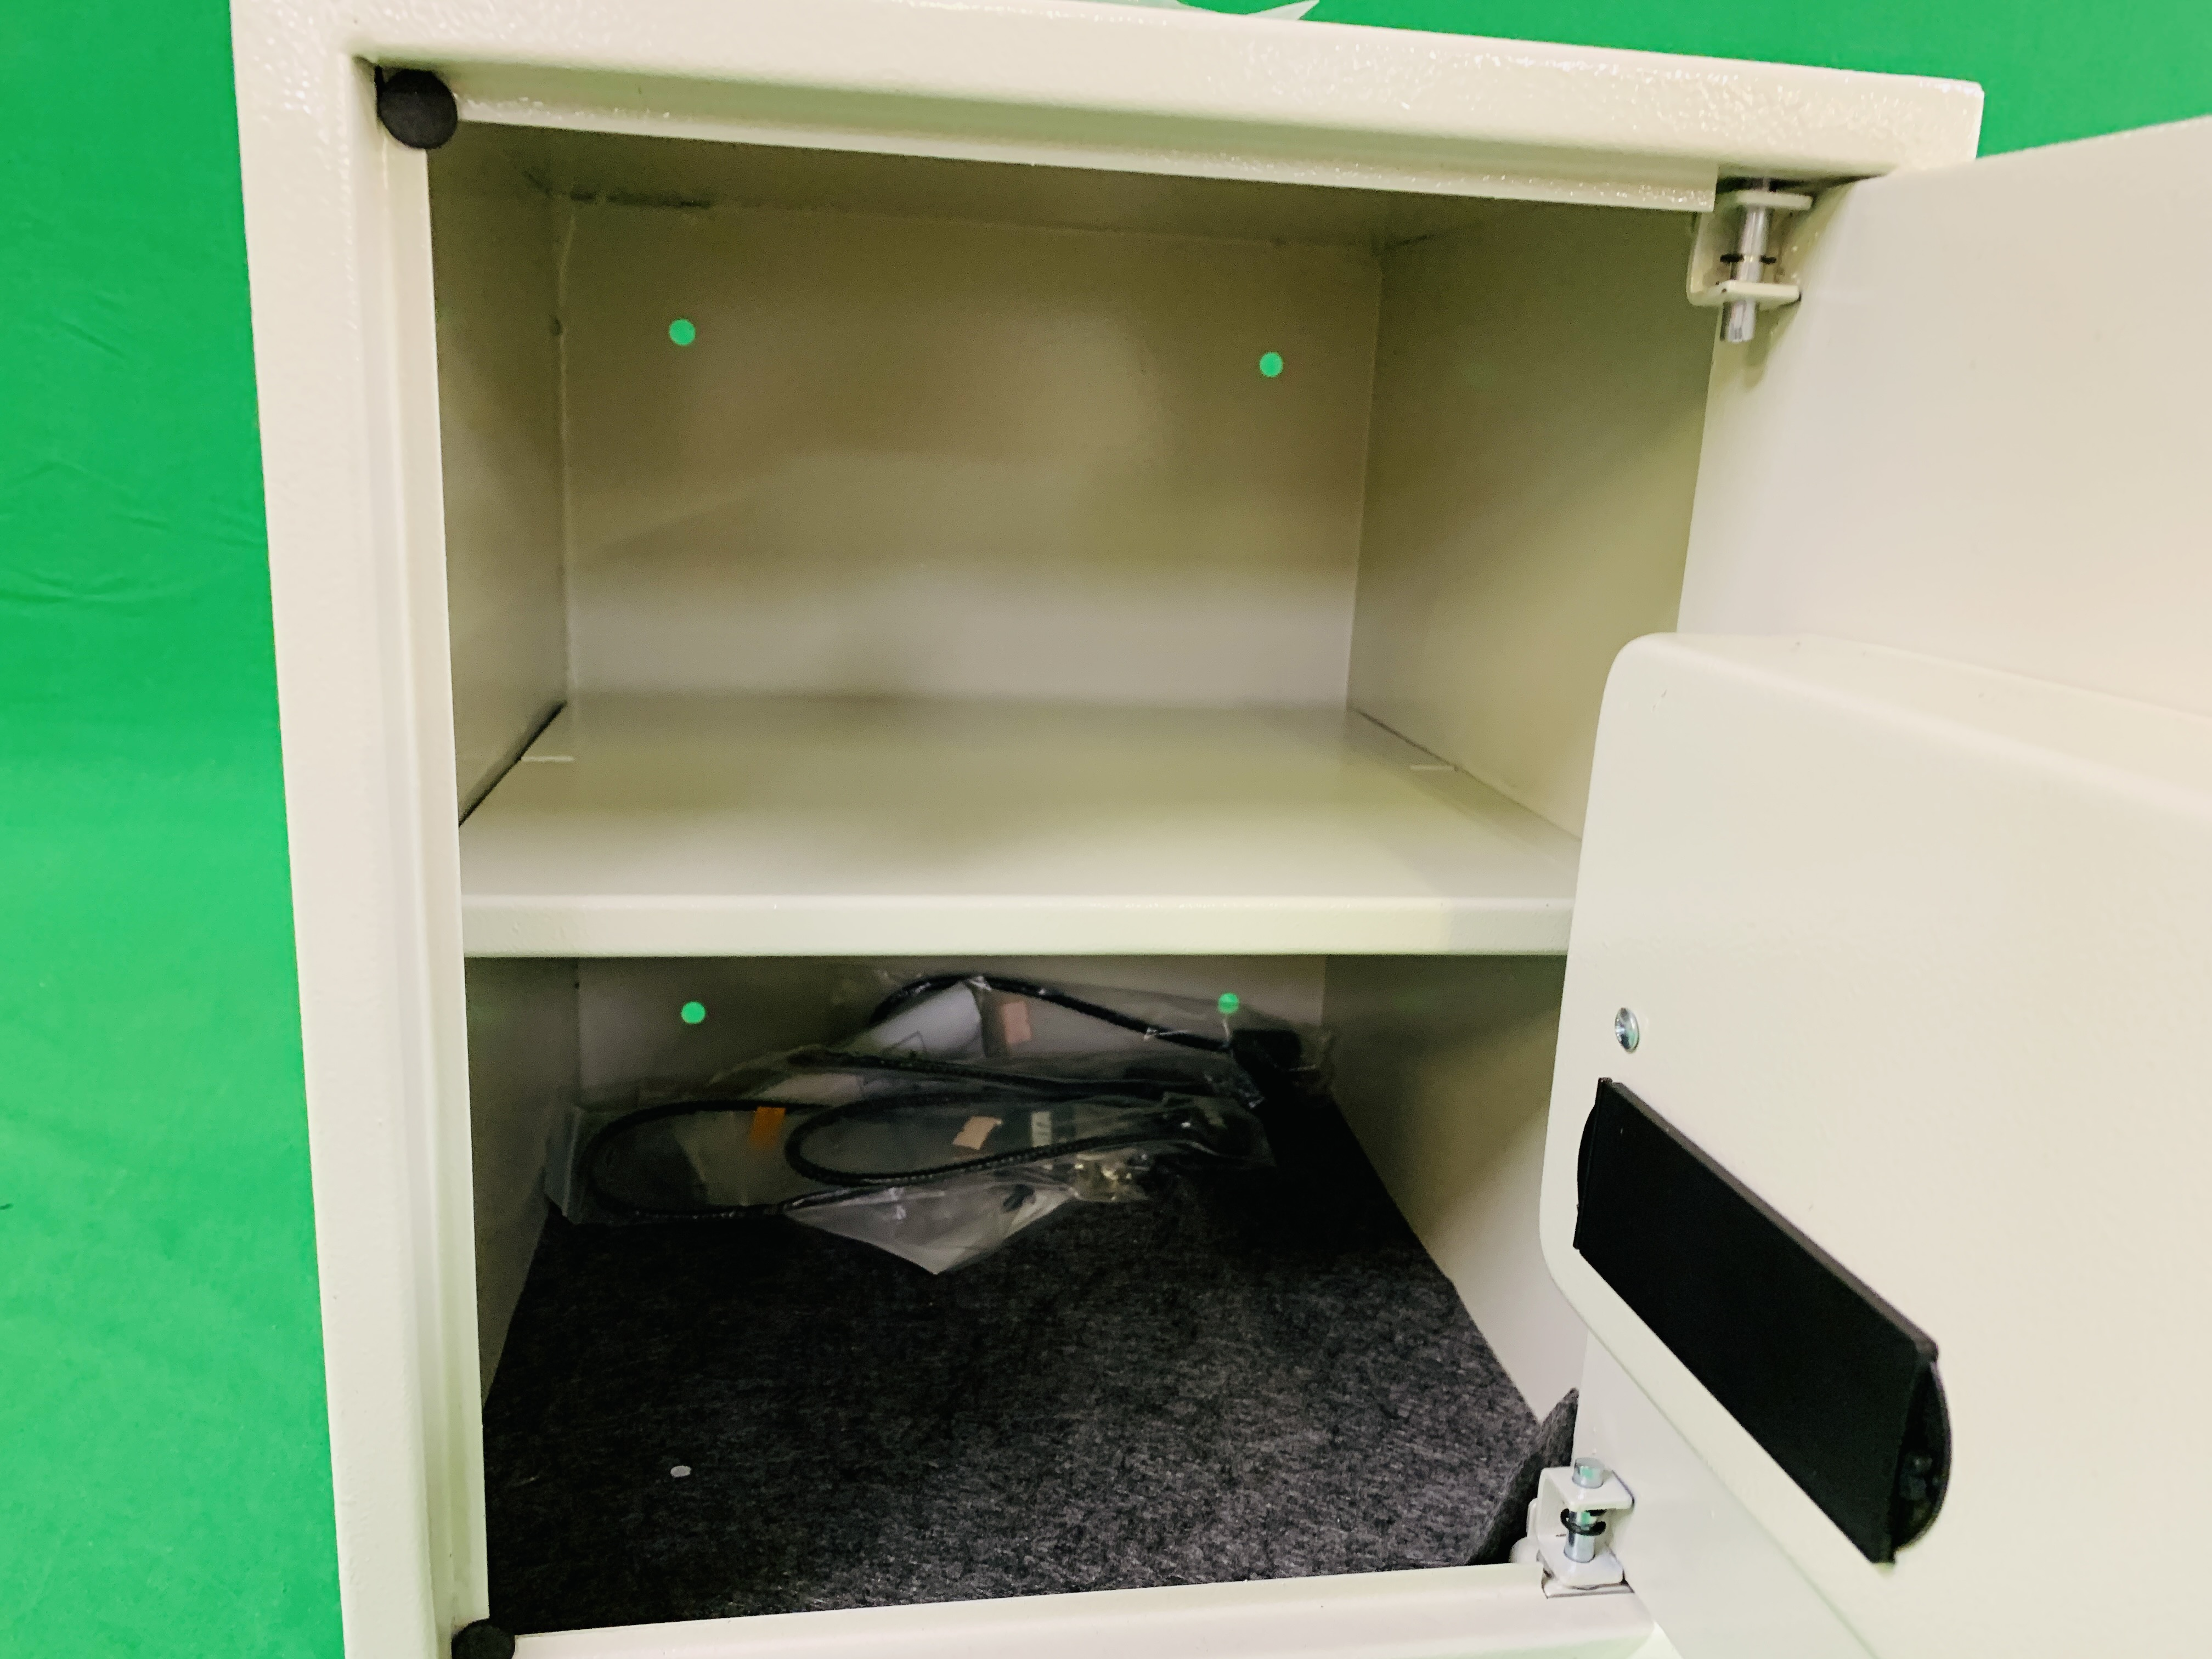 DIRTY PRO SAFE CE ELECTRIC COMBINATION SAFE COMPLETE WITH INSTRUCTIONS ALONG WITH FOUR AS NEW AMTA - Image 4 of 8